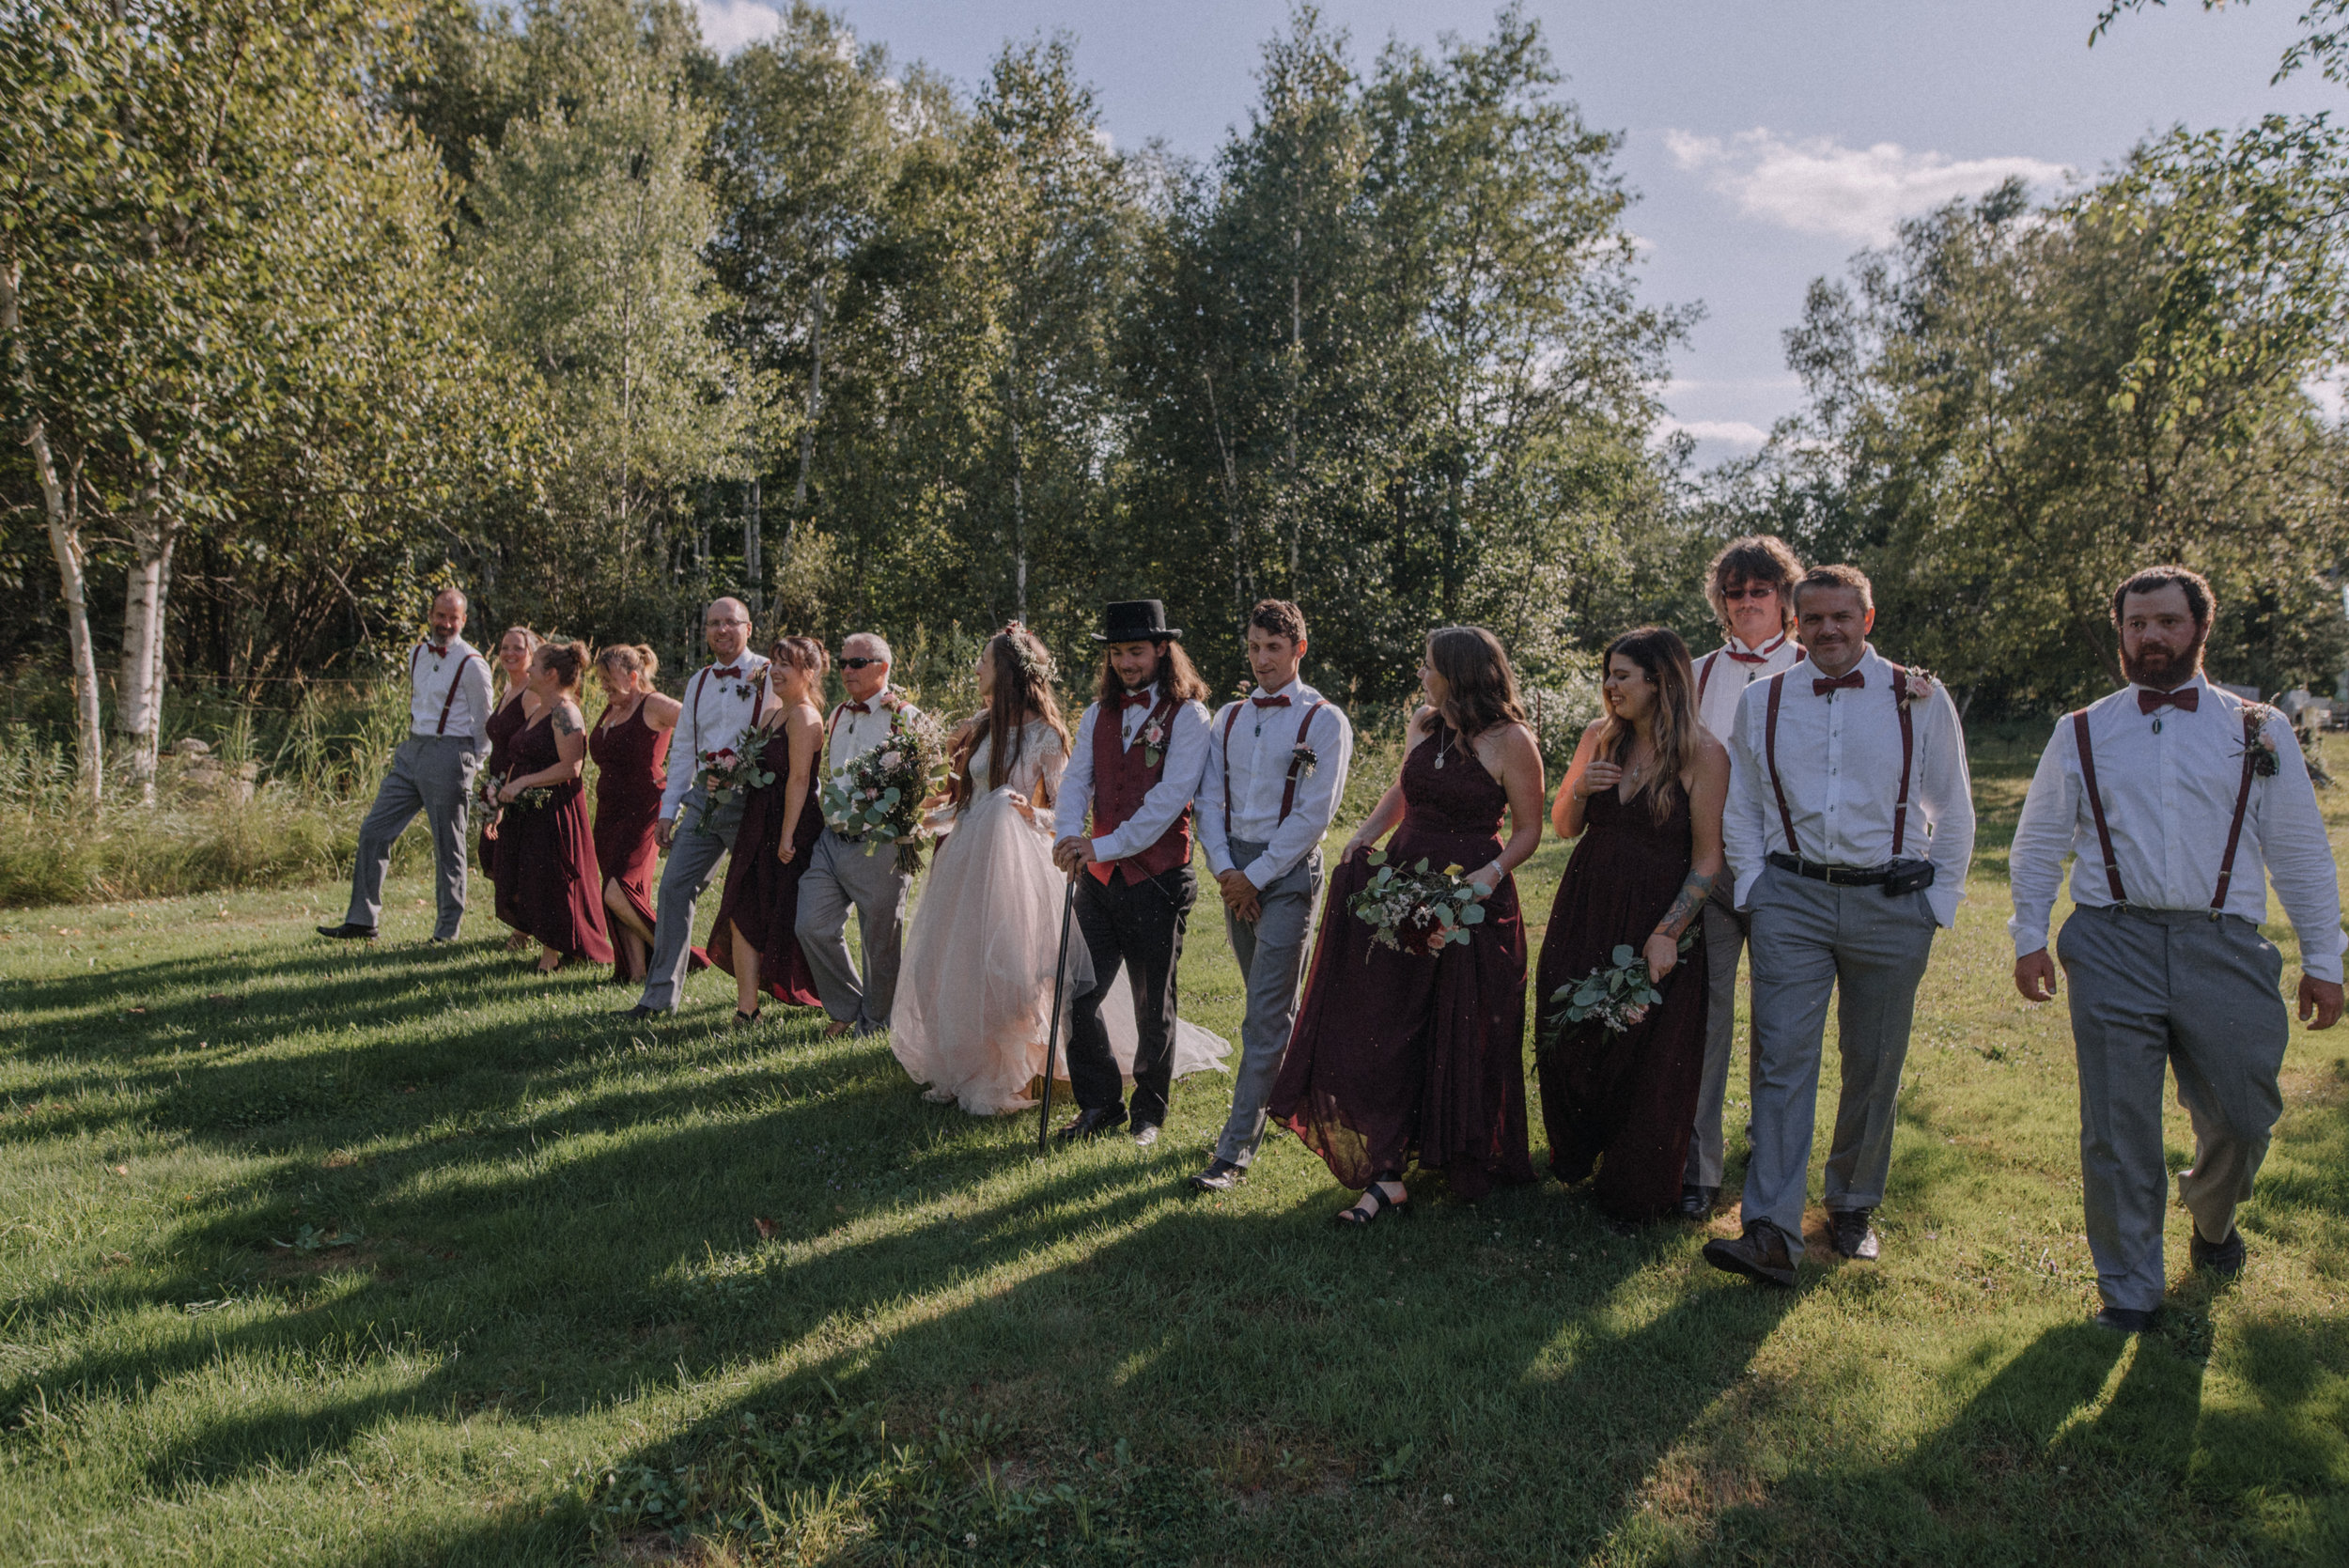 ottawa_wedding_photographer_gatineau_photographe_mariage_documentary_candid_photojournalist_natural_raw_boho_wedding_backyard (28).JPG